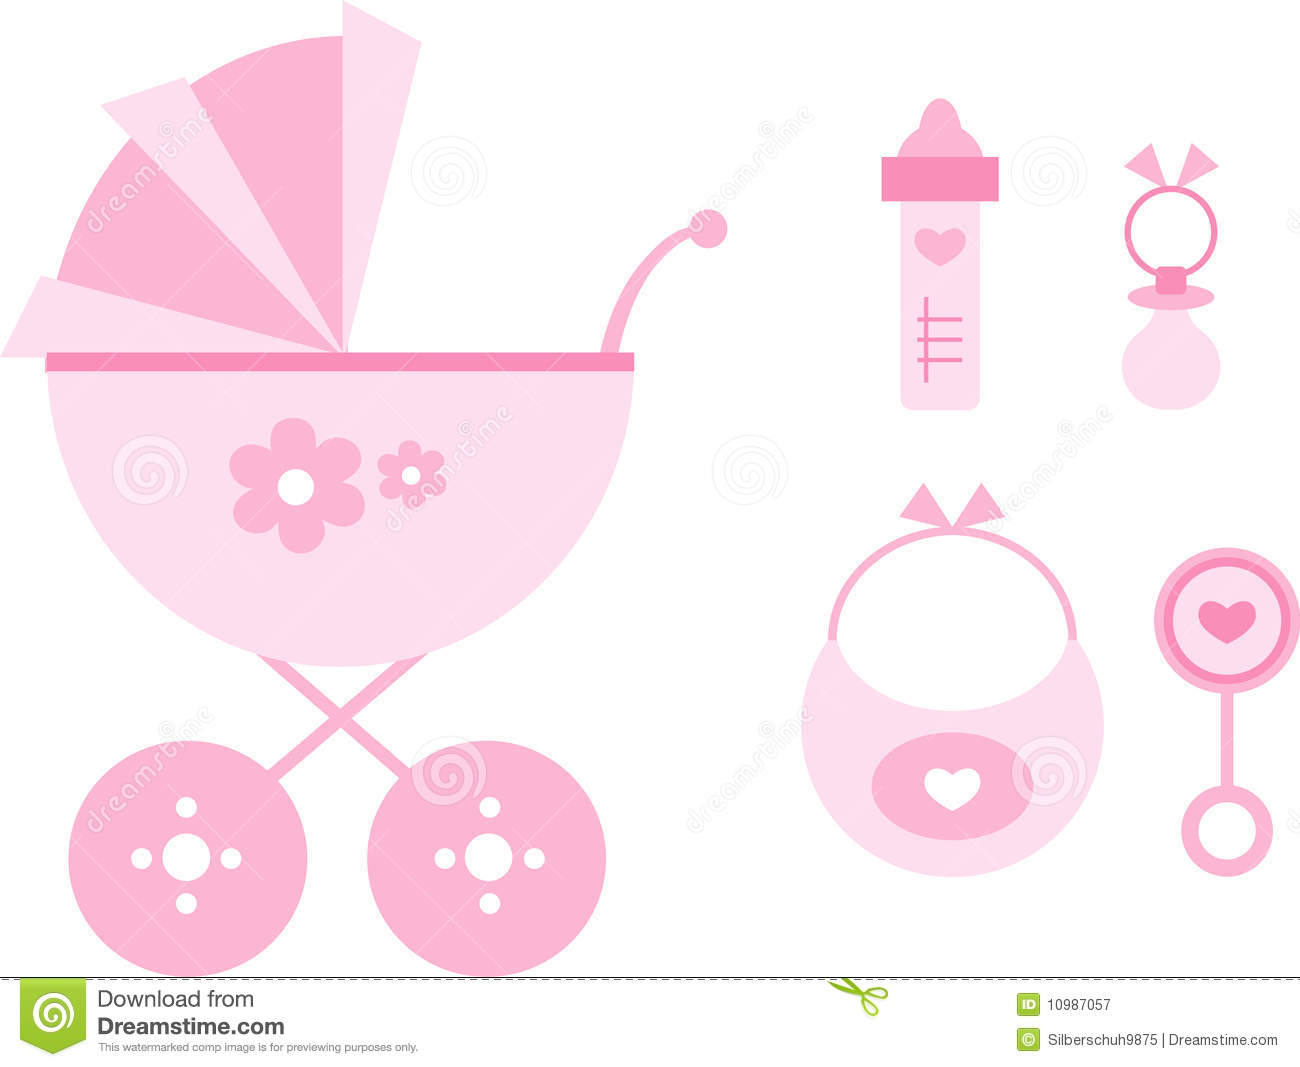 Morphograph clipart image Babies clipart tool - 177 transparent clip arts, images and ... image